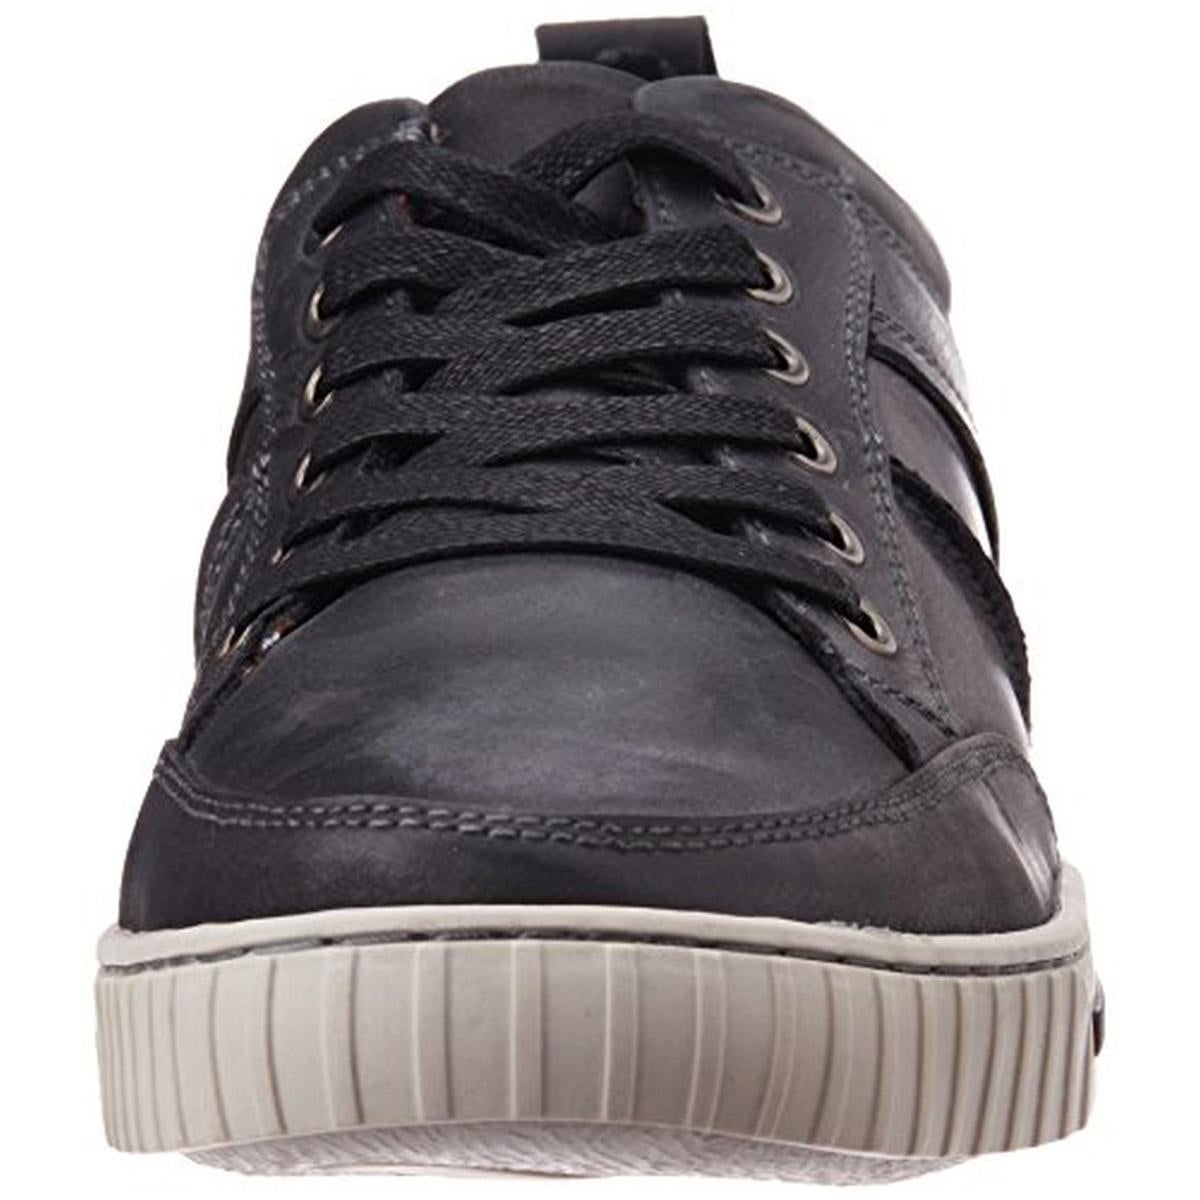 ef421c2ee91 Shop Steve Madden Mens Pipeur Fashion Sneakers Classic Trainer - Free  Shipping On Orders Over  45 - Overstock - 22670942